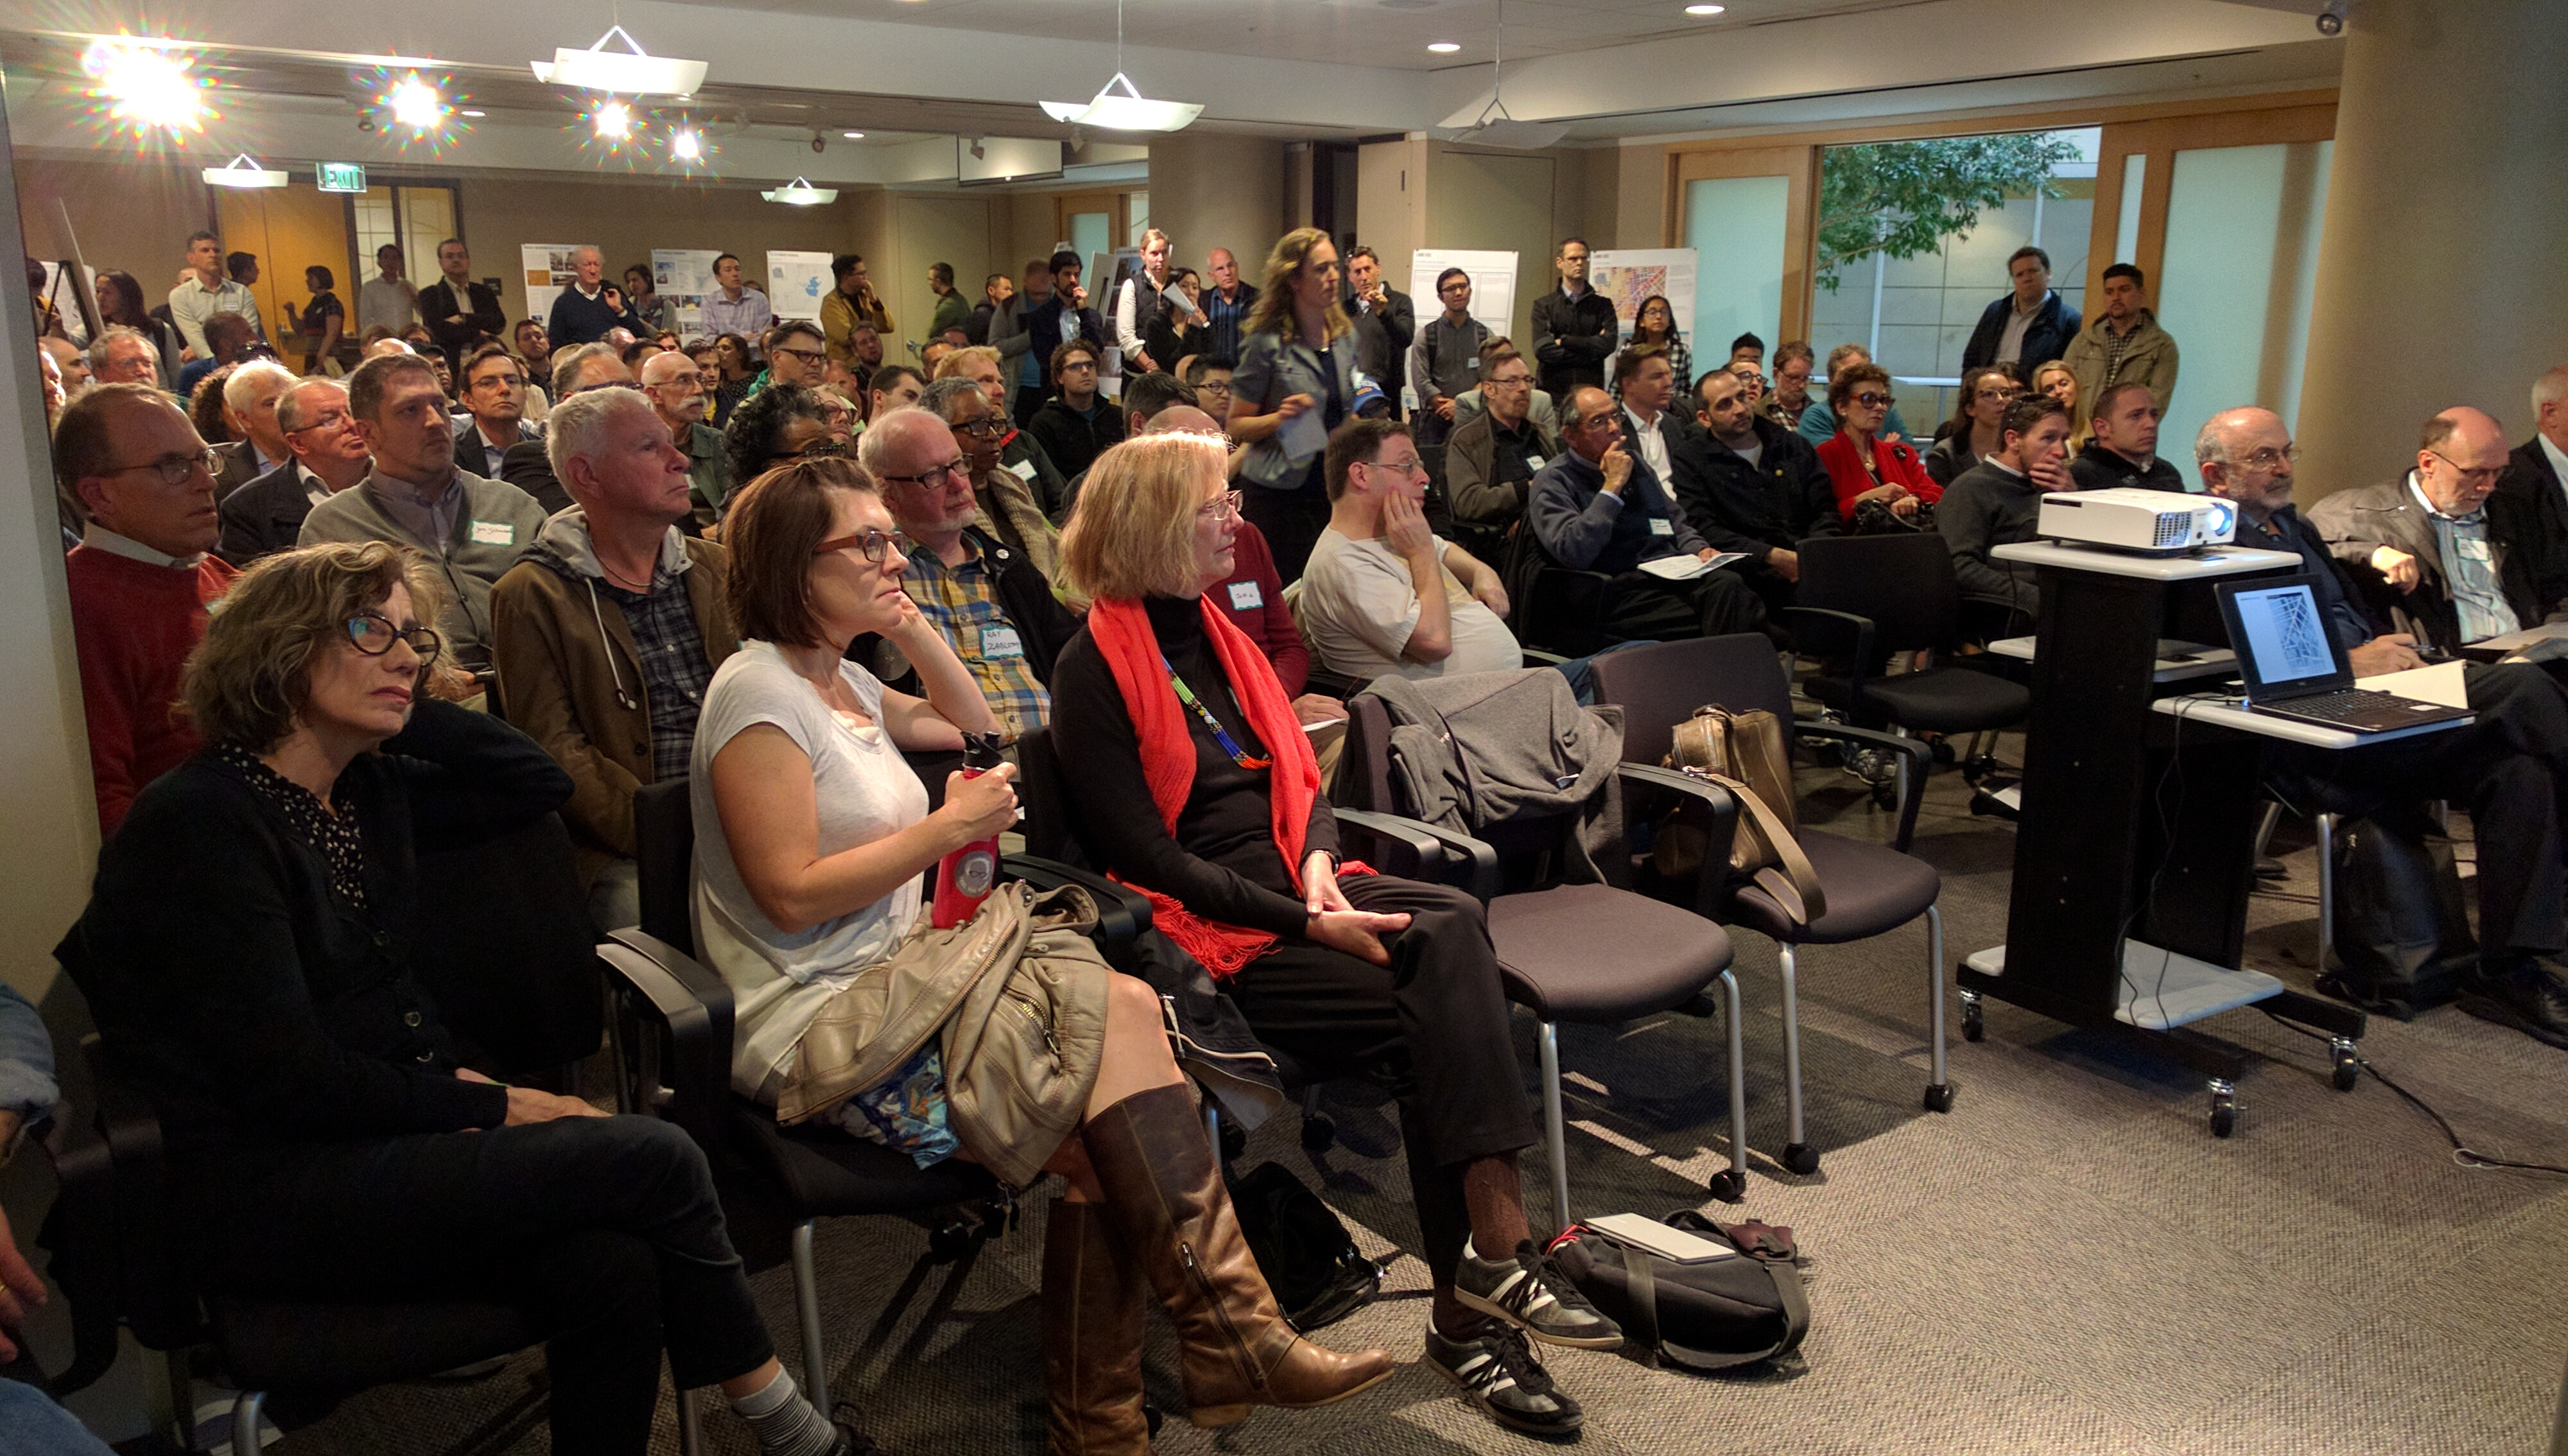 It was standing room only for SF Plannings HUB presentation. Photo: Streetsblog.